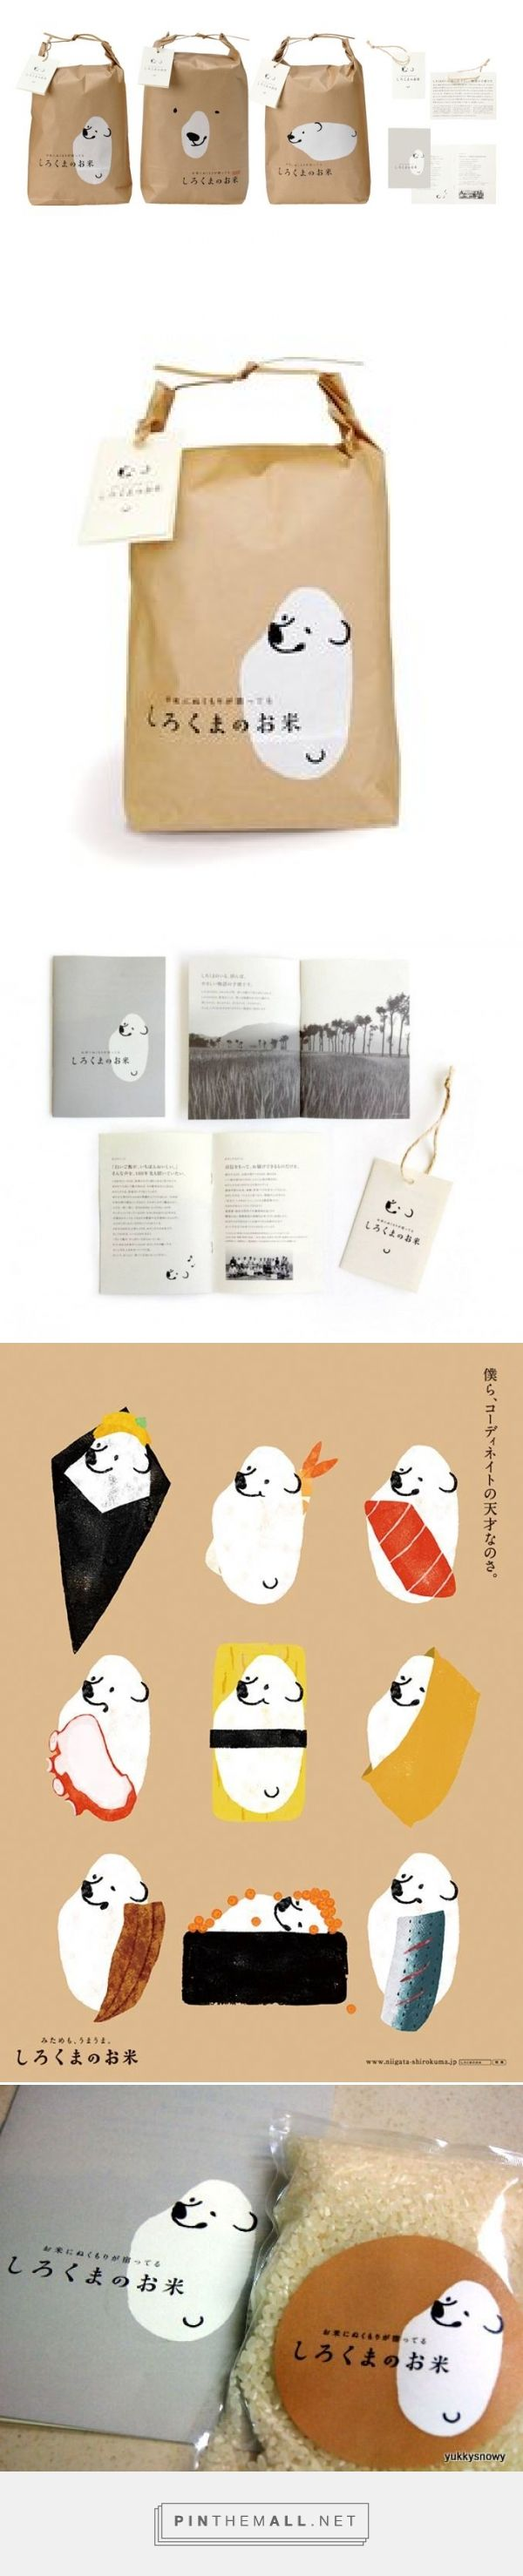 More behind the very popular Shirokuma Rice packaging by Ishikawa Ryuta curated by Packaging Diva. Had to go to several different sources to pull this all together,